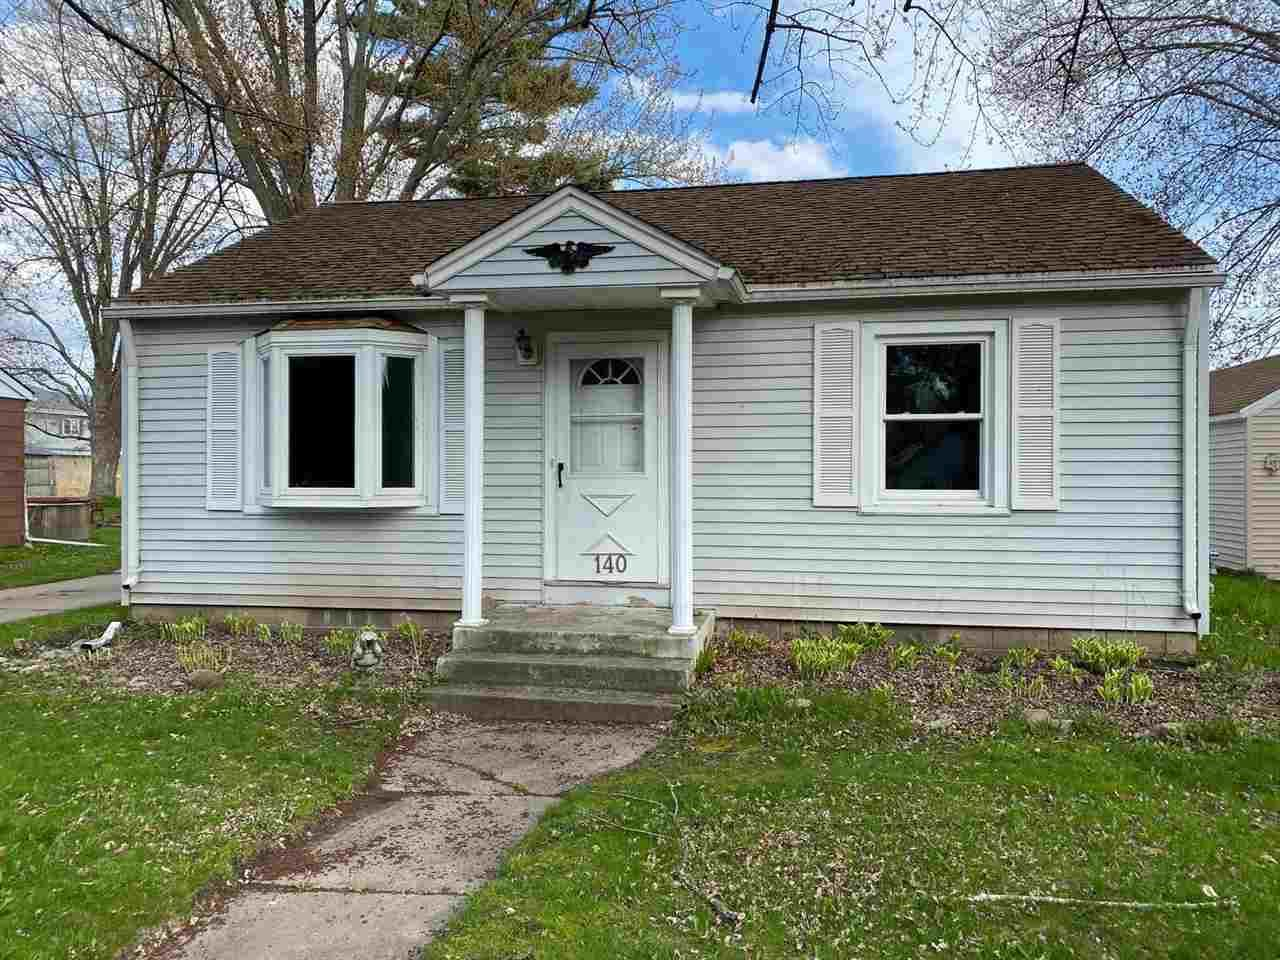 140 ROBERT Street, Clintonville, WI 54929 - MLS#: 50239255